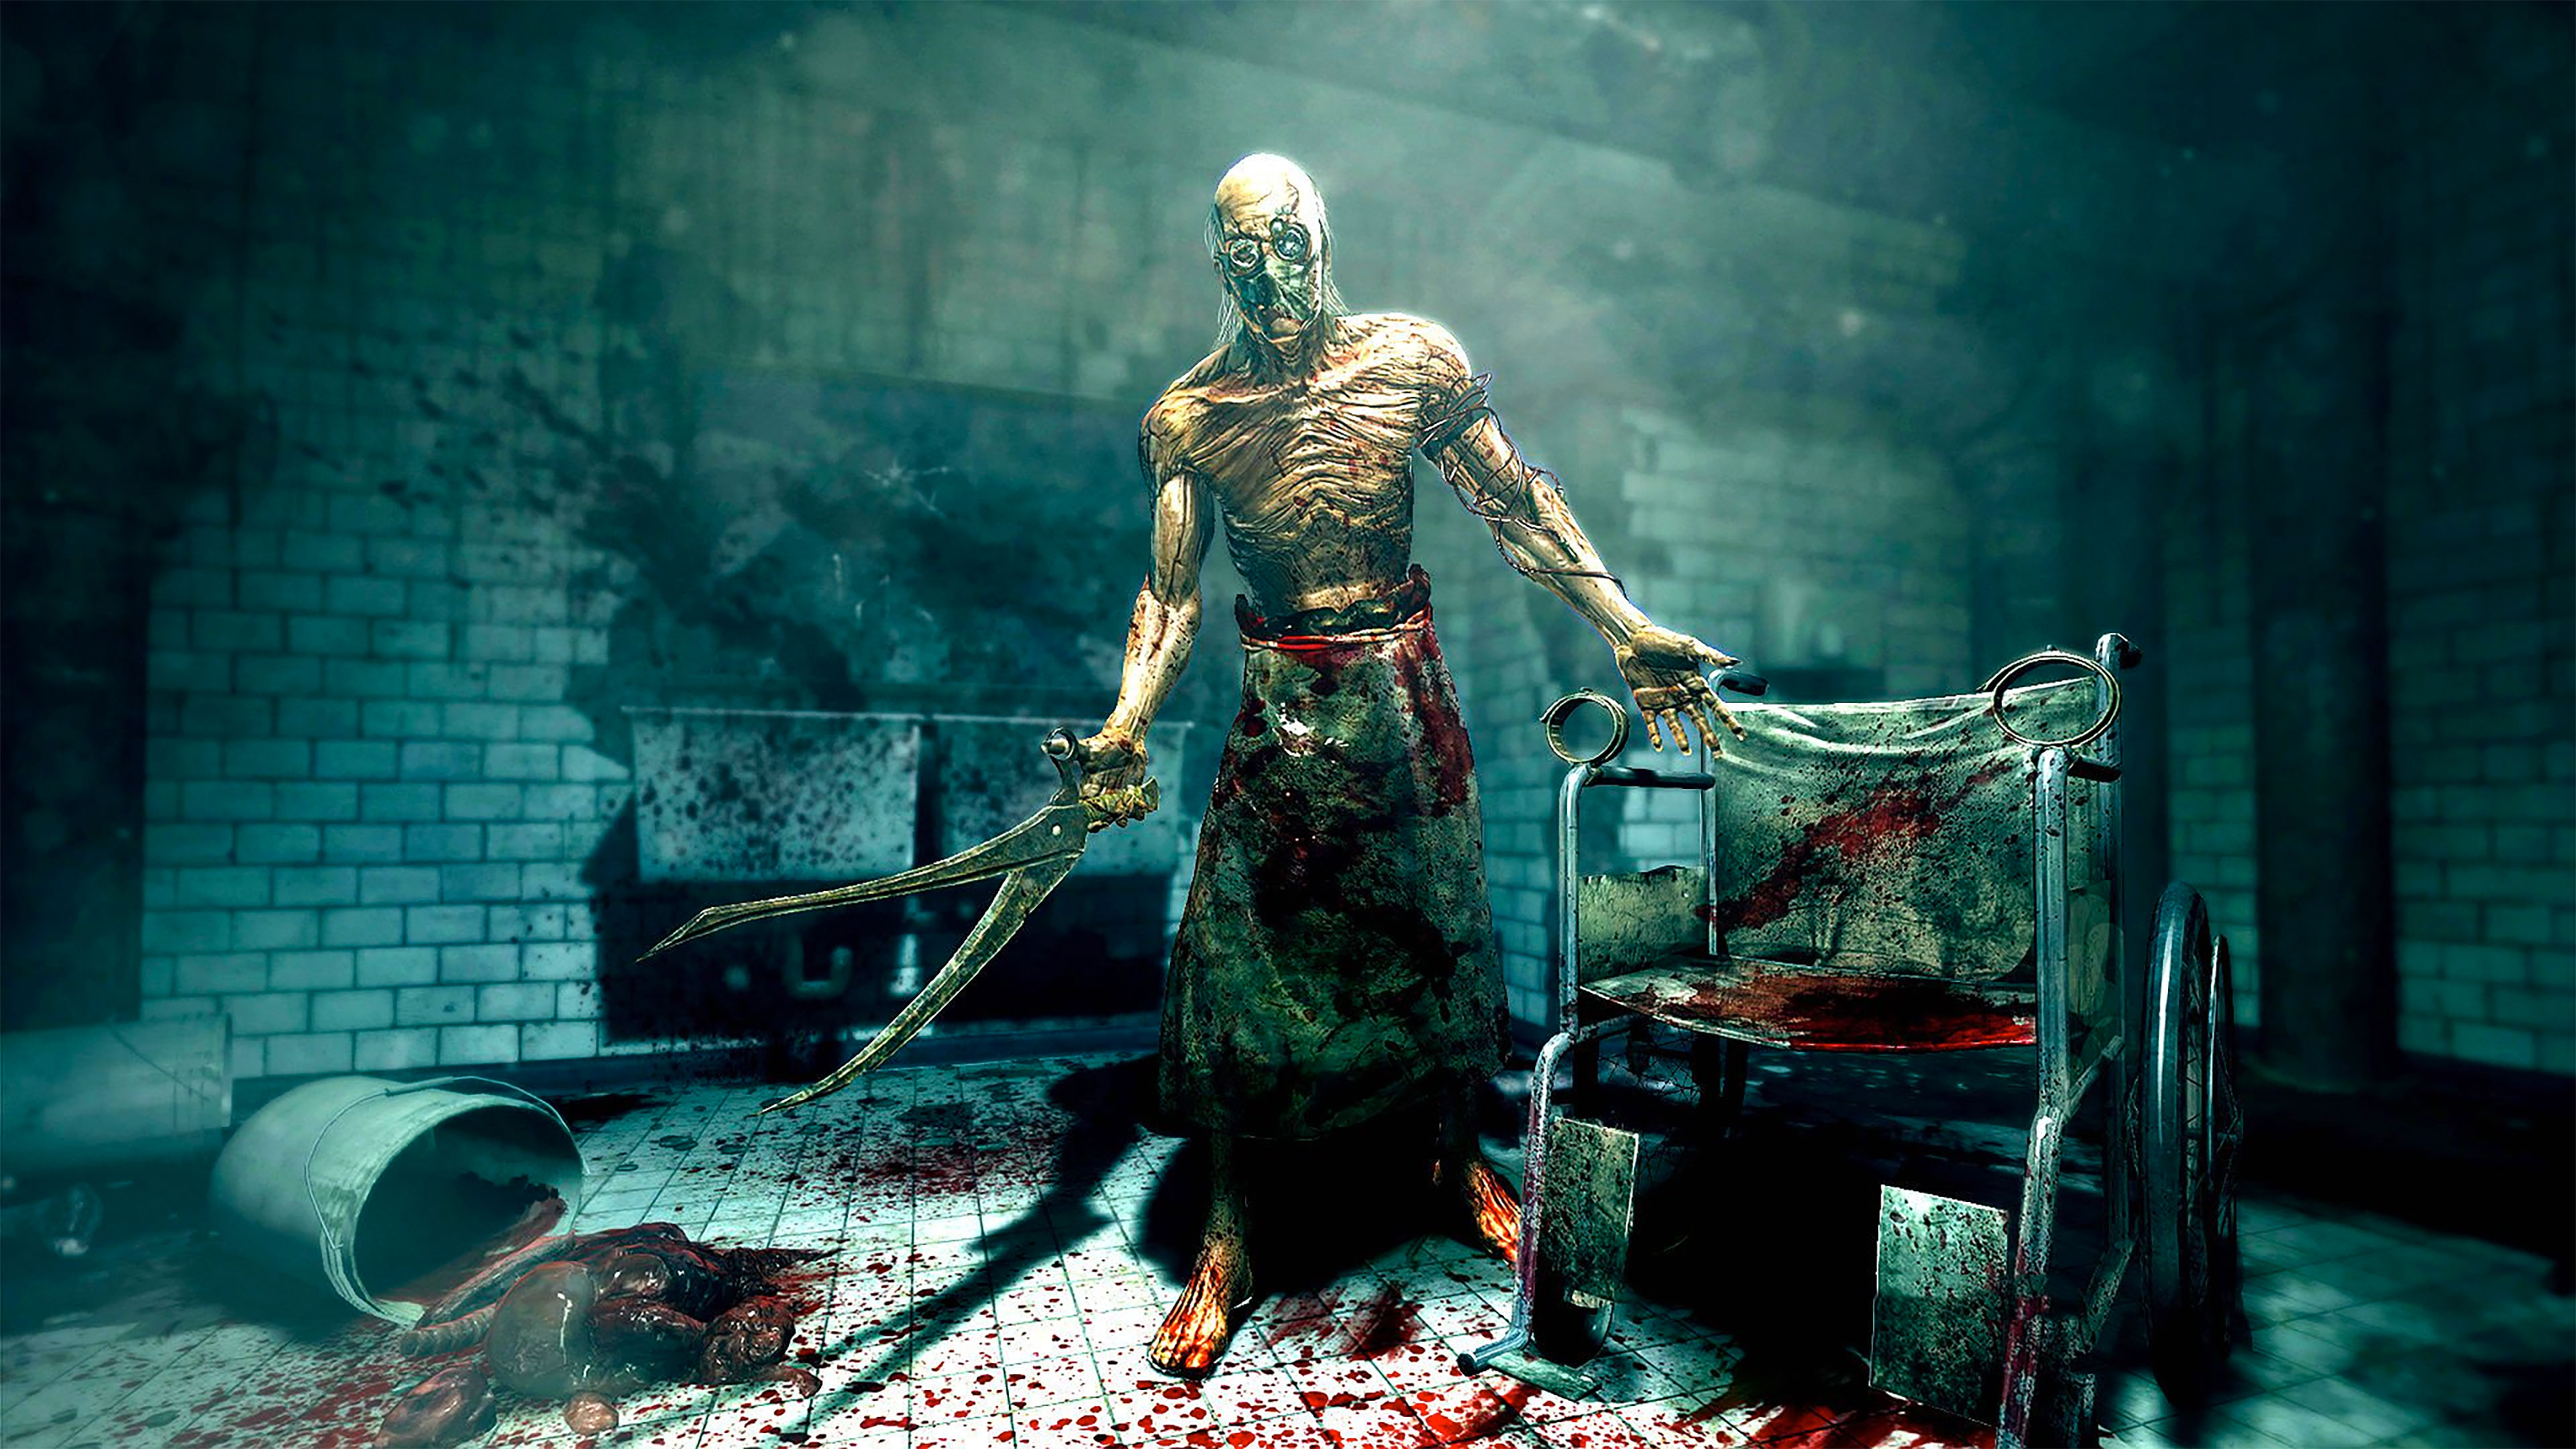 3840x2160 - Outlast HD Wallpapers 14